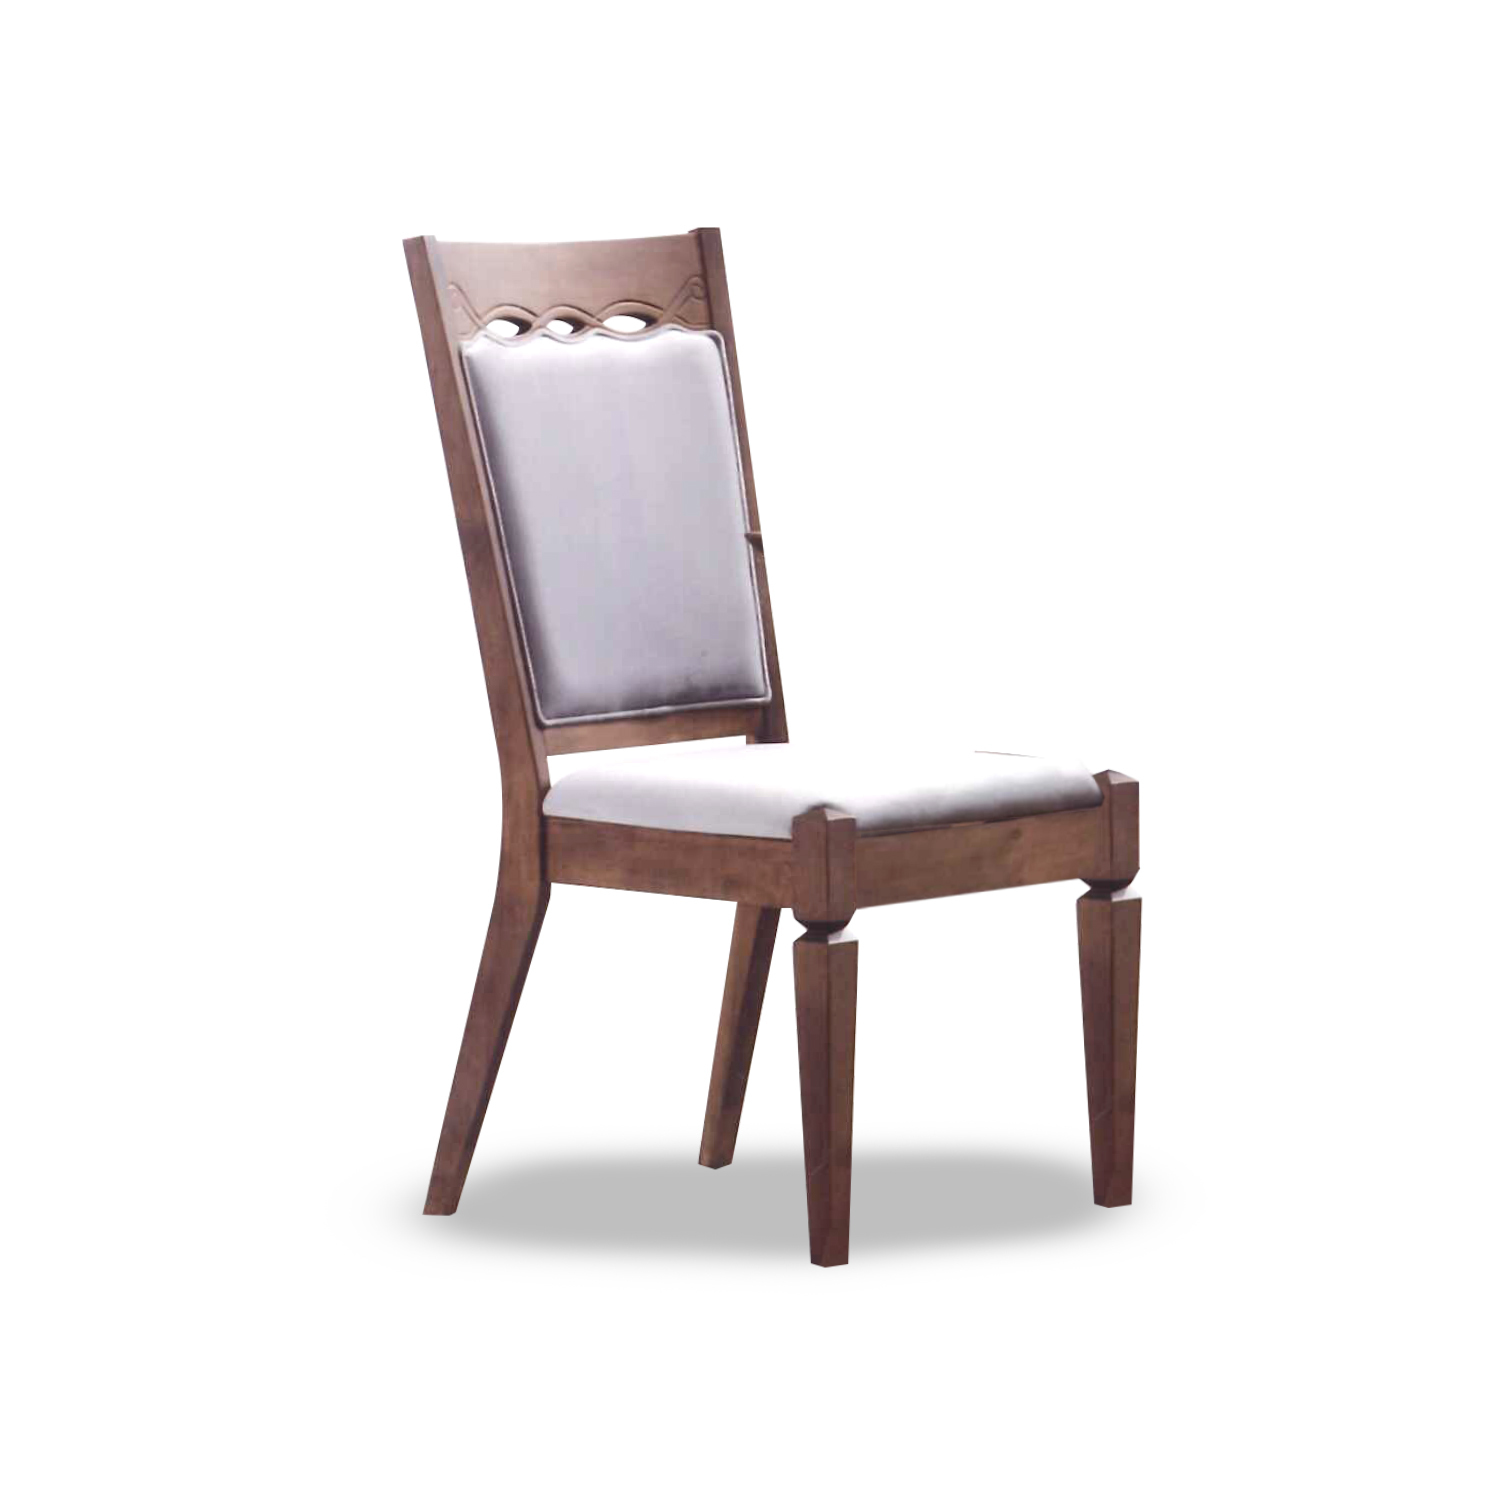 Dining Chair 14-161 Walnut